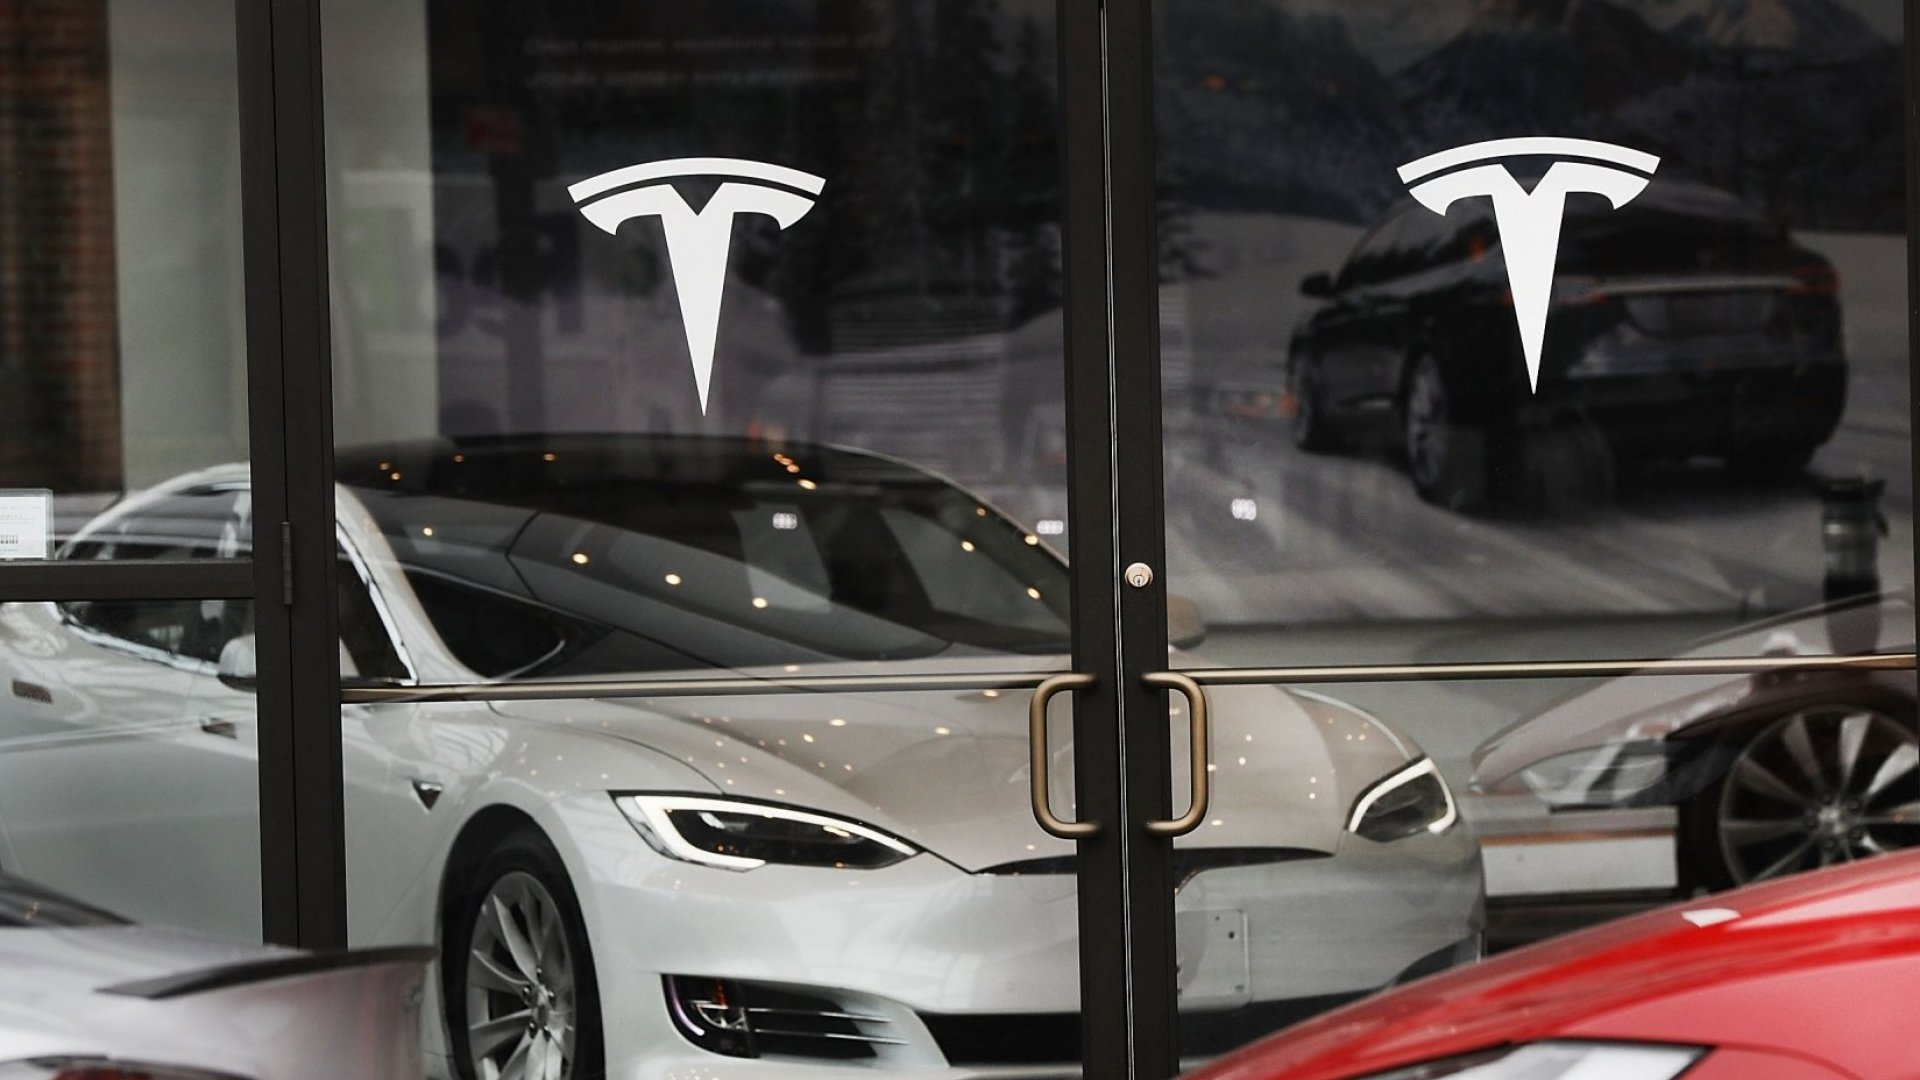 Tesla Plans to Open More Retail Locations Ahead of Model 3 Launch